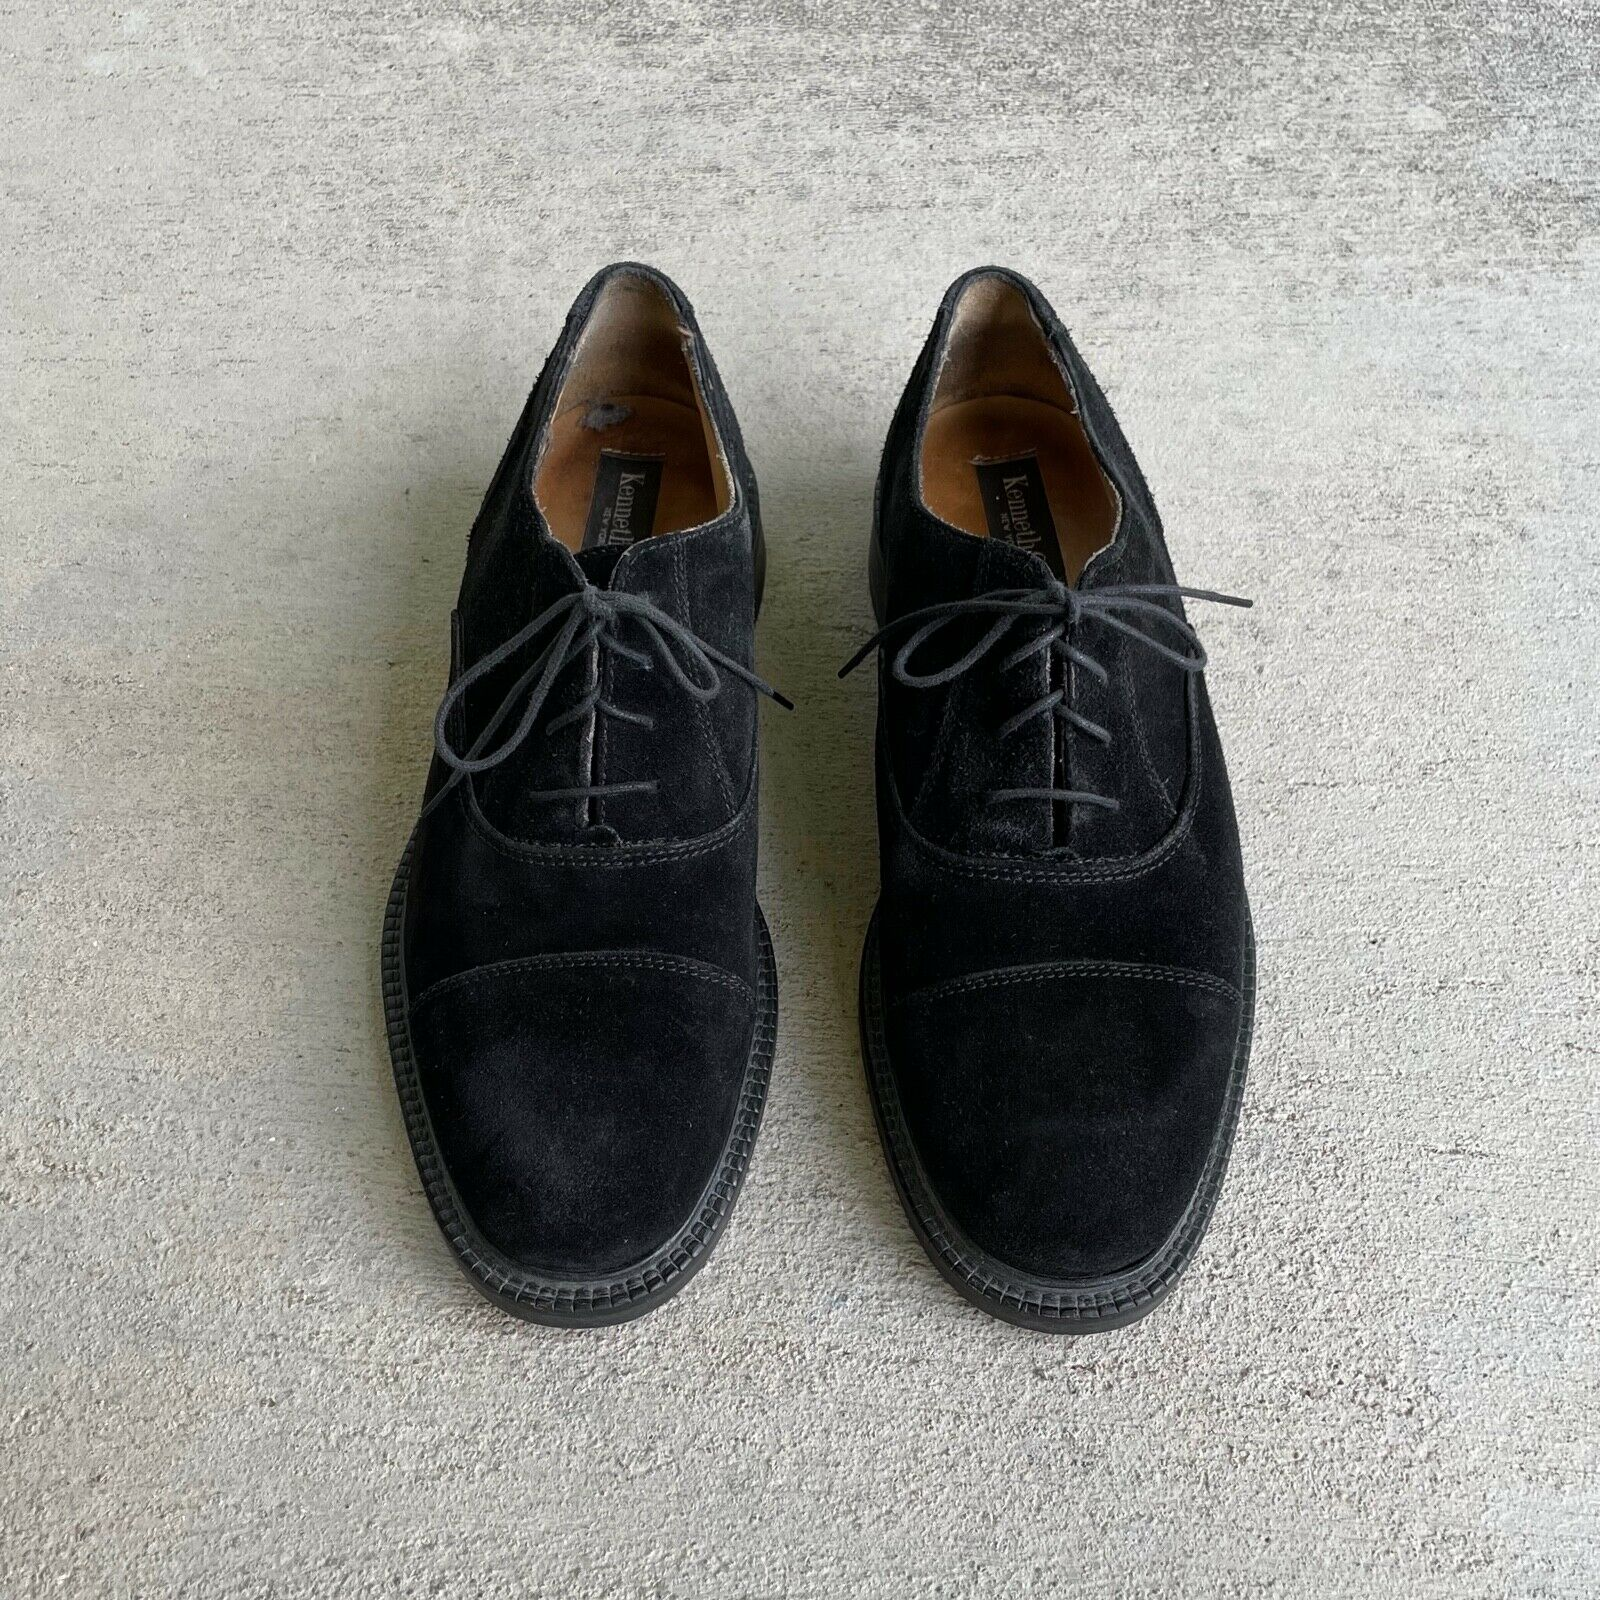 Vintage 90s Kenneth Cole Black Suede Cap Toe Derby Shoes Made in Italy Fits 9.5